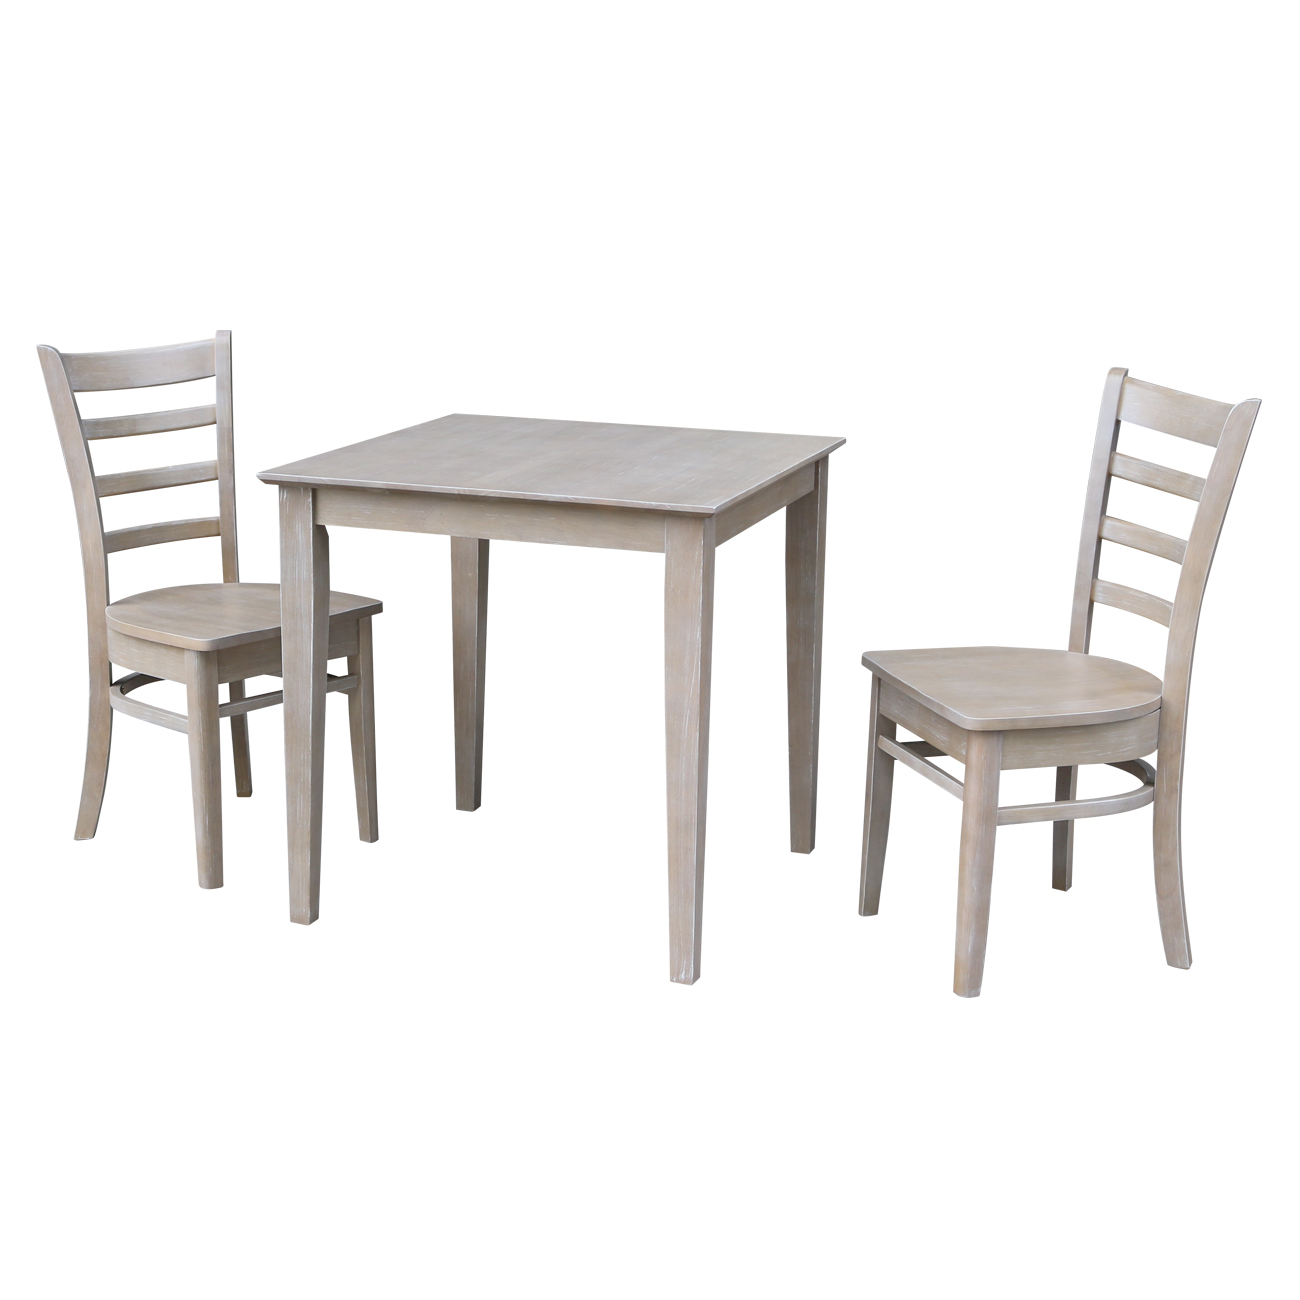 """30"""" x 30"""" Wood Dining Table and 2 Emily Chairs in Washed Gray Taupe-Set of 3"""